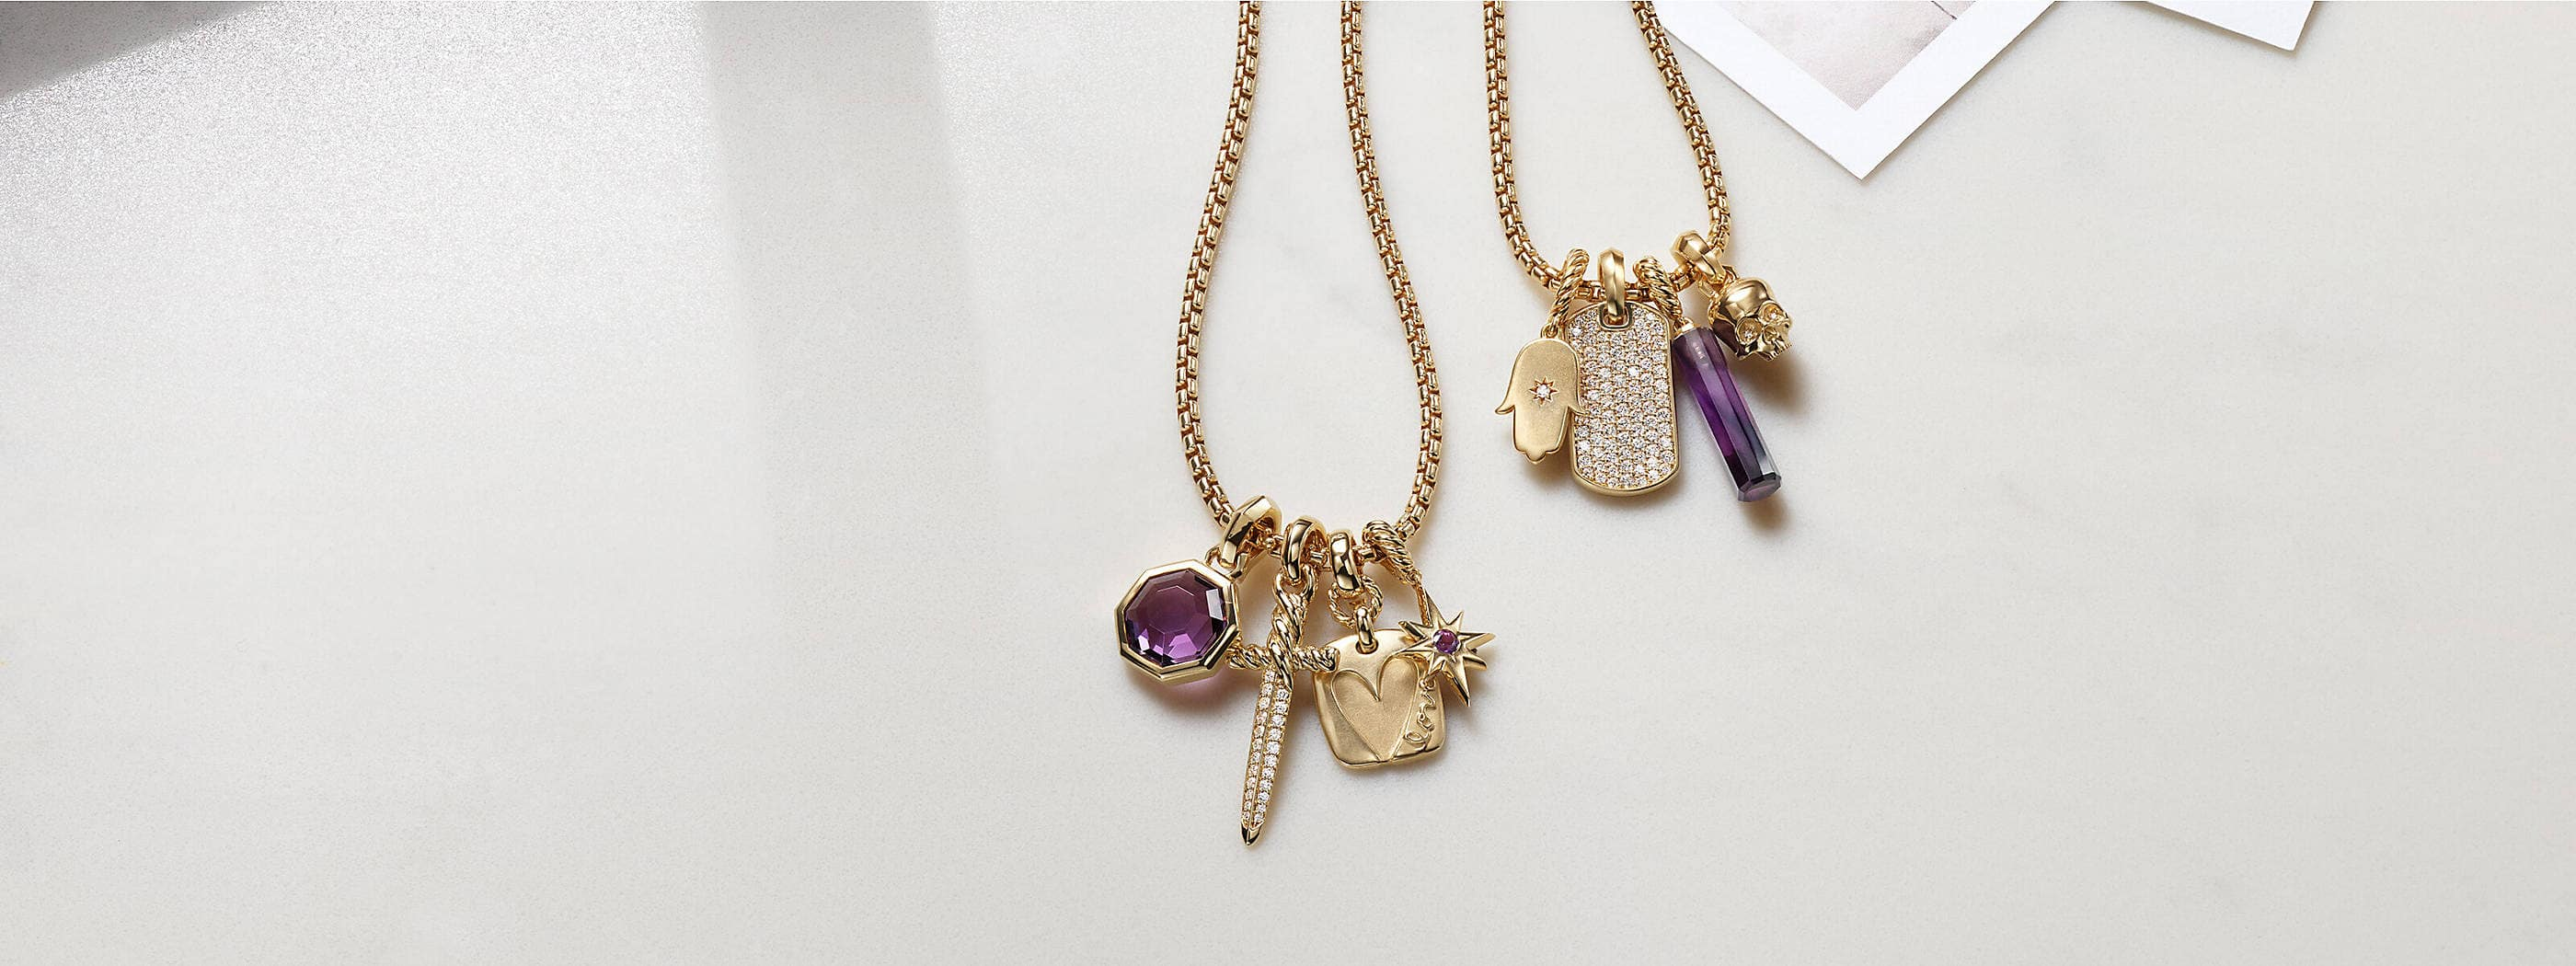 A color photograph shows two David Yurman chain necklaces strung with four amulet pendants each. The women's jewelry is crafted from 18K yellow gold with or without pavé diamonds and amethyst. The pendants come in various shapes such as a tag, octagon, dagger, star, hamsa hand or skull. The jewelry is lying on a white background with dark shadows near three black-and-white photographs.